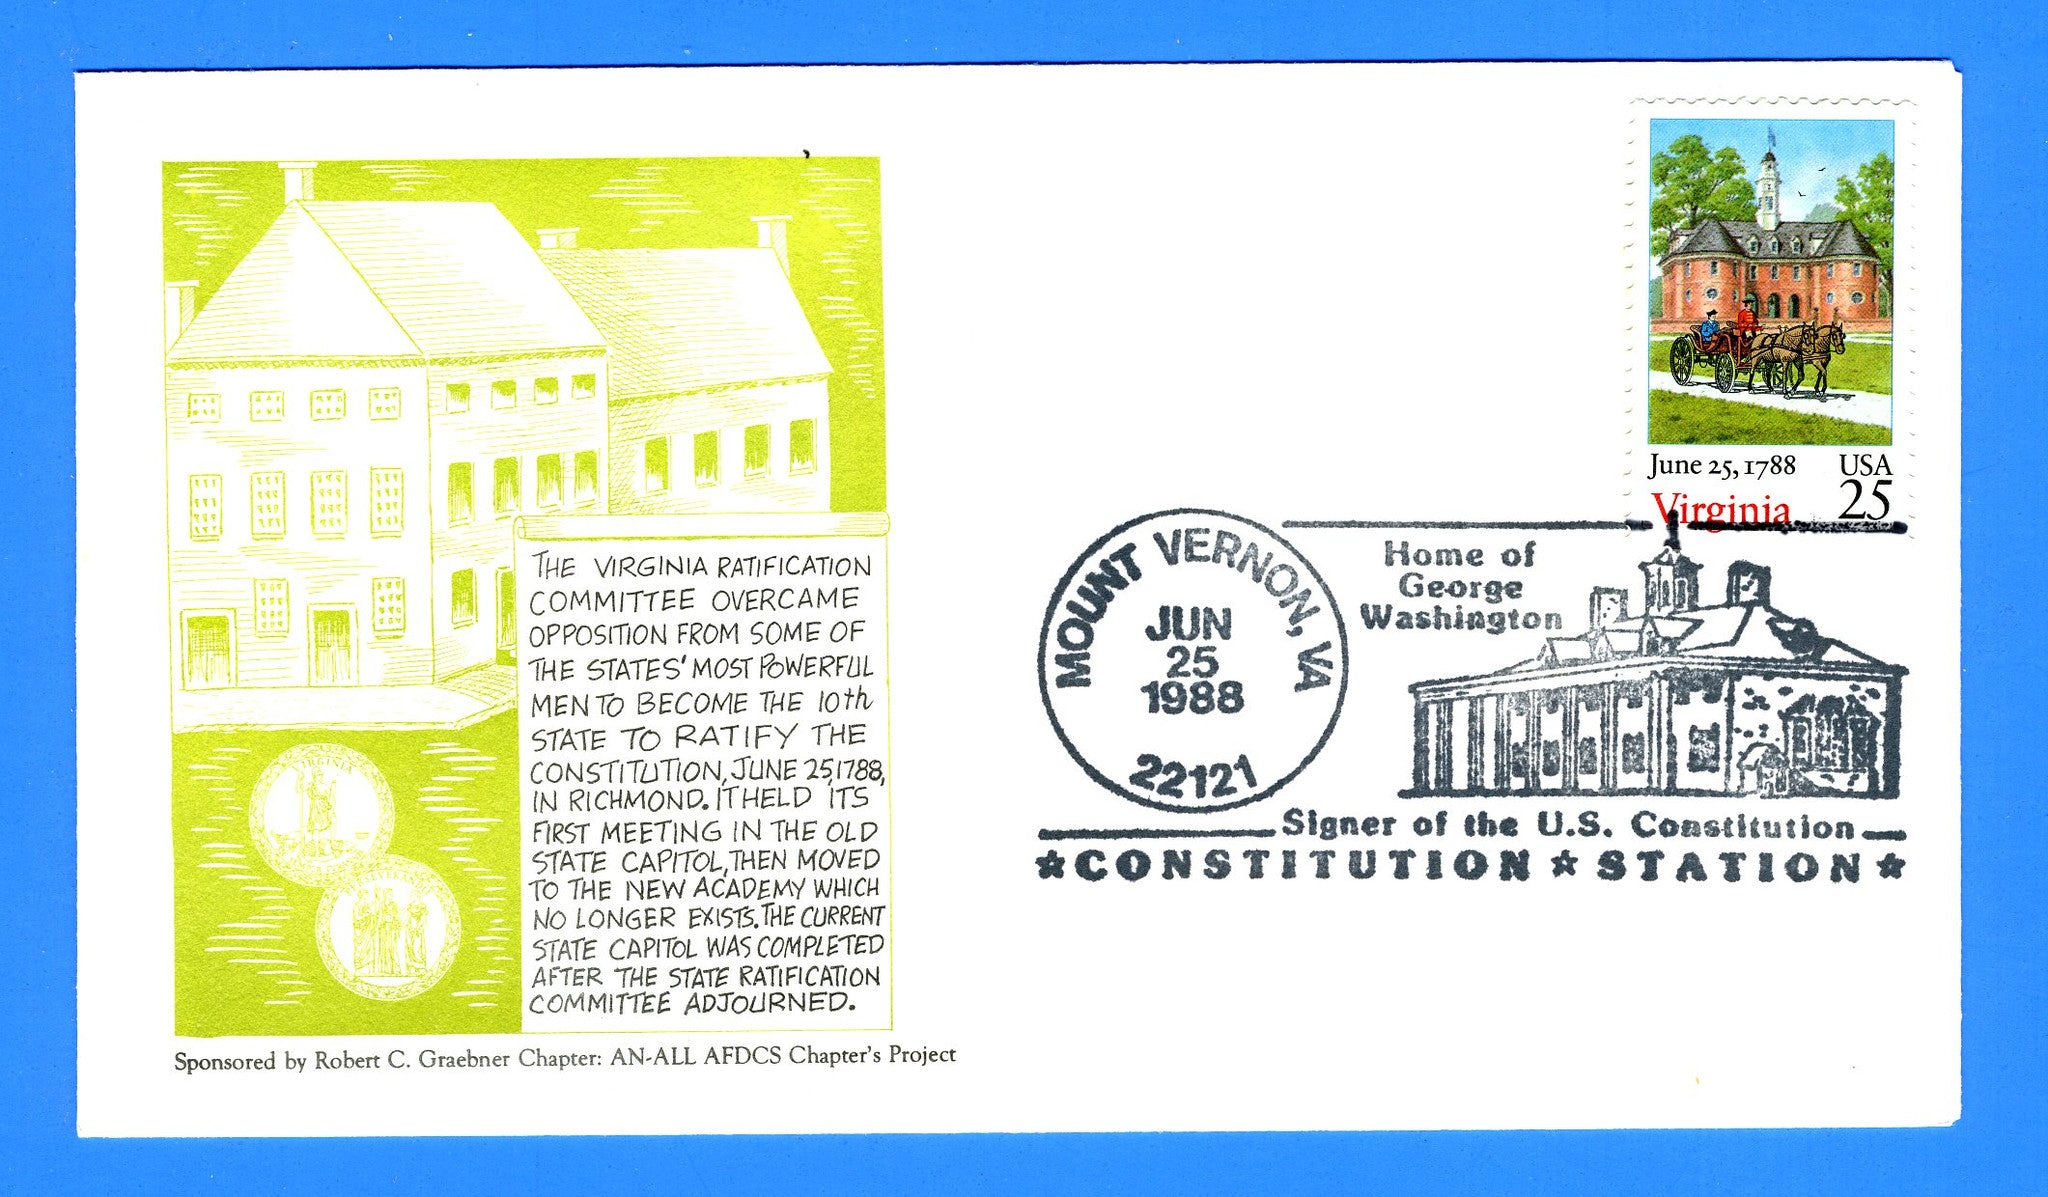 Scott 2345 Virginia Bicentennial FDC by the Robert C. Graebner Chapter of the AFDCS - Mount Vernon Pictorial Cancel